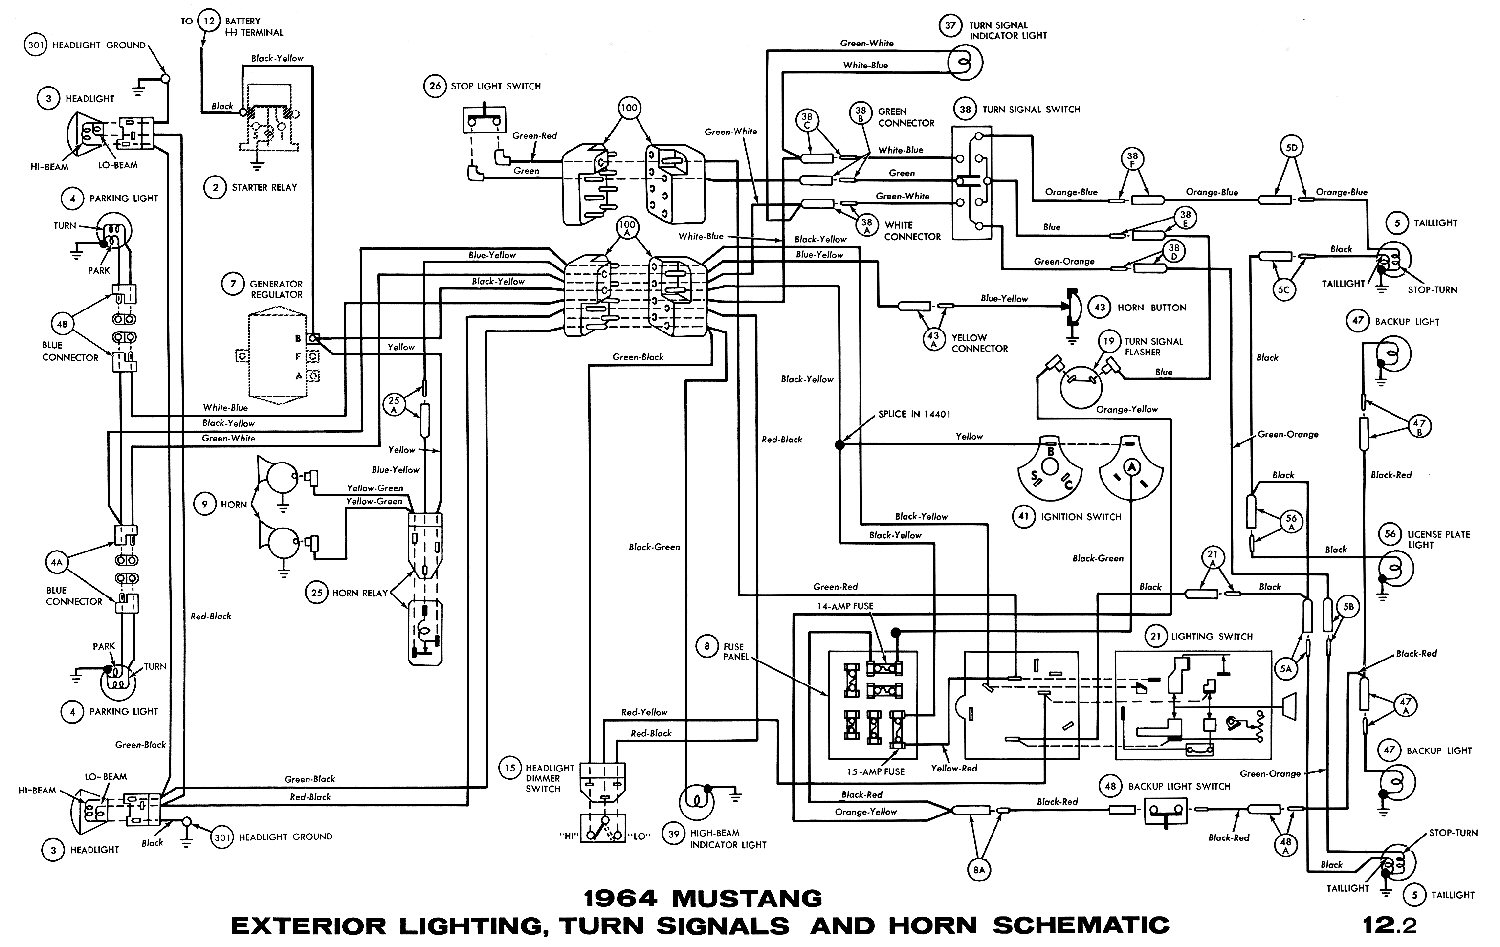 1964i 1964 mustang wiring diagrams average joe restoration 1967 mustang ignition wiring diagram at gsmx.co